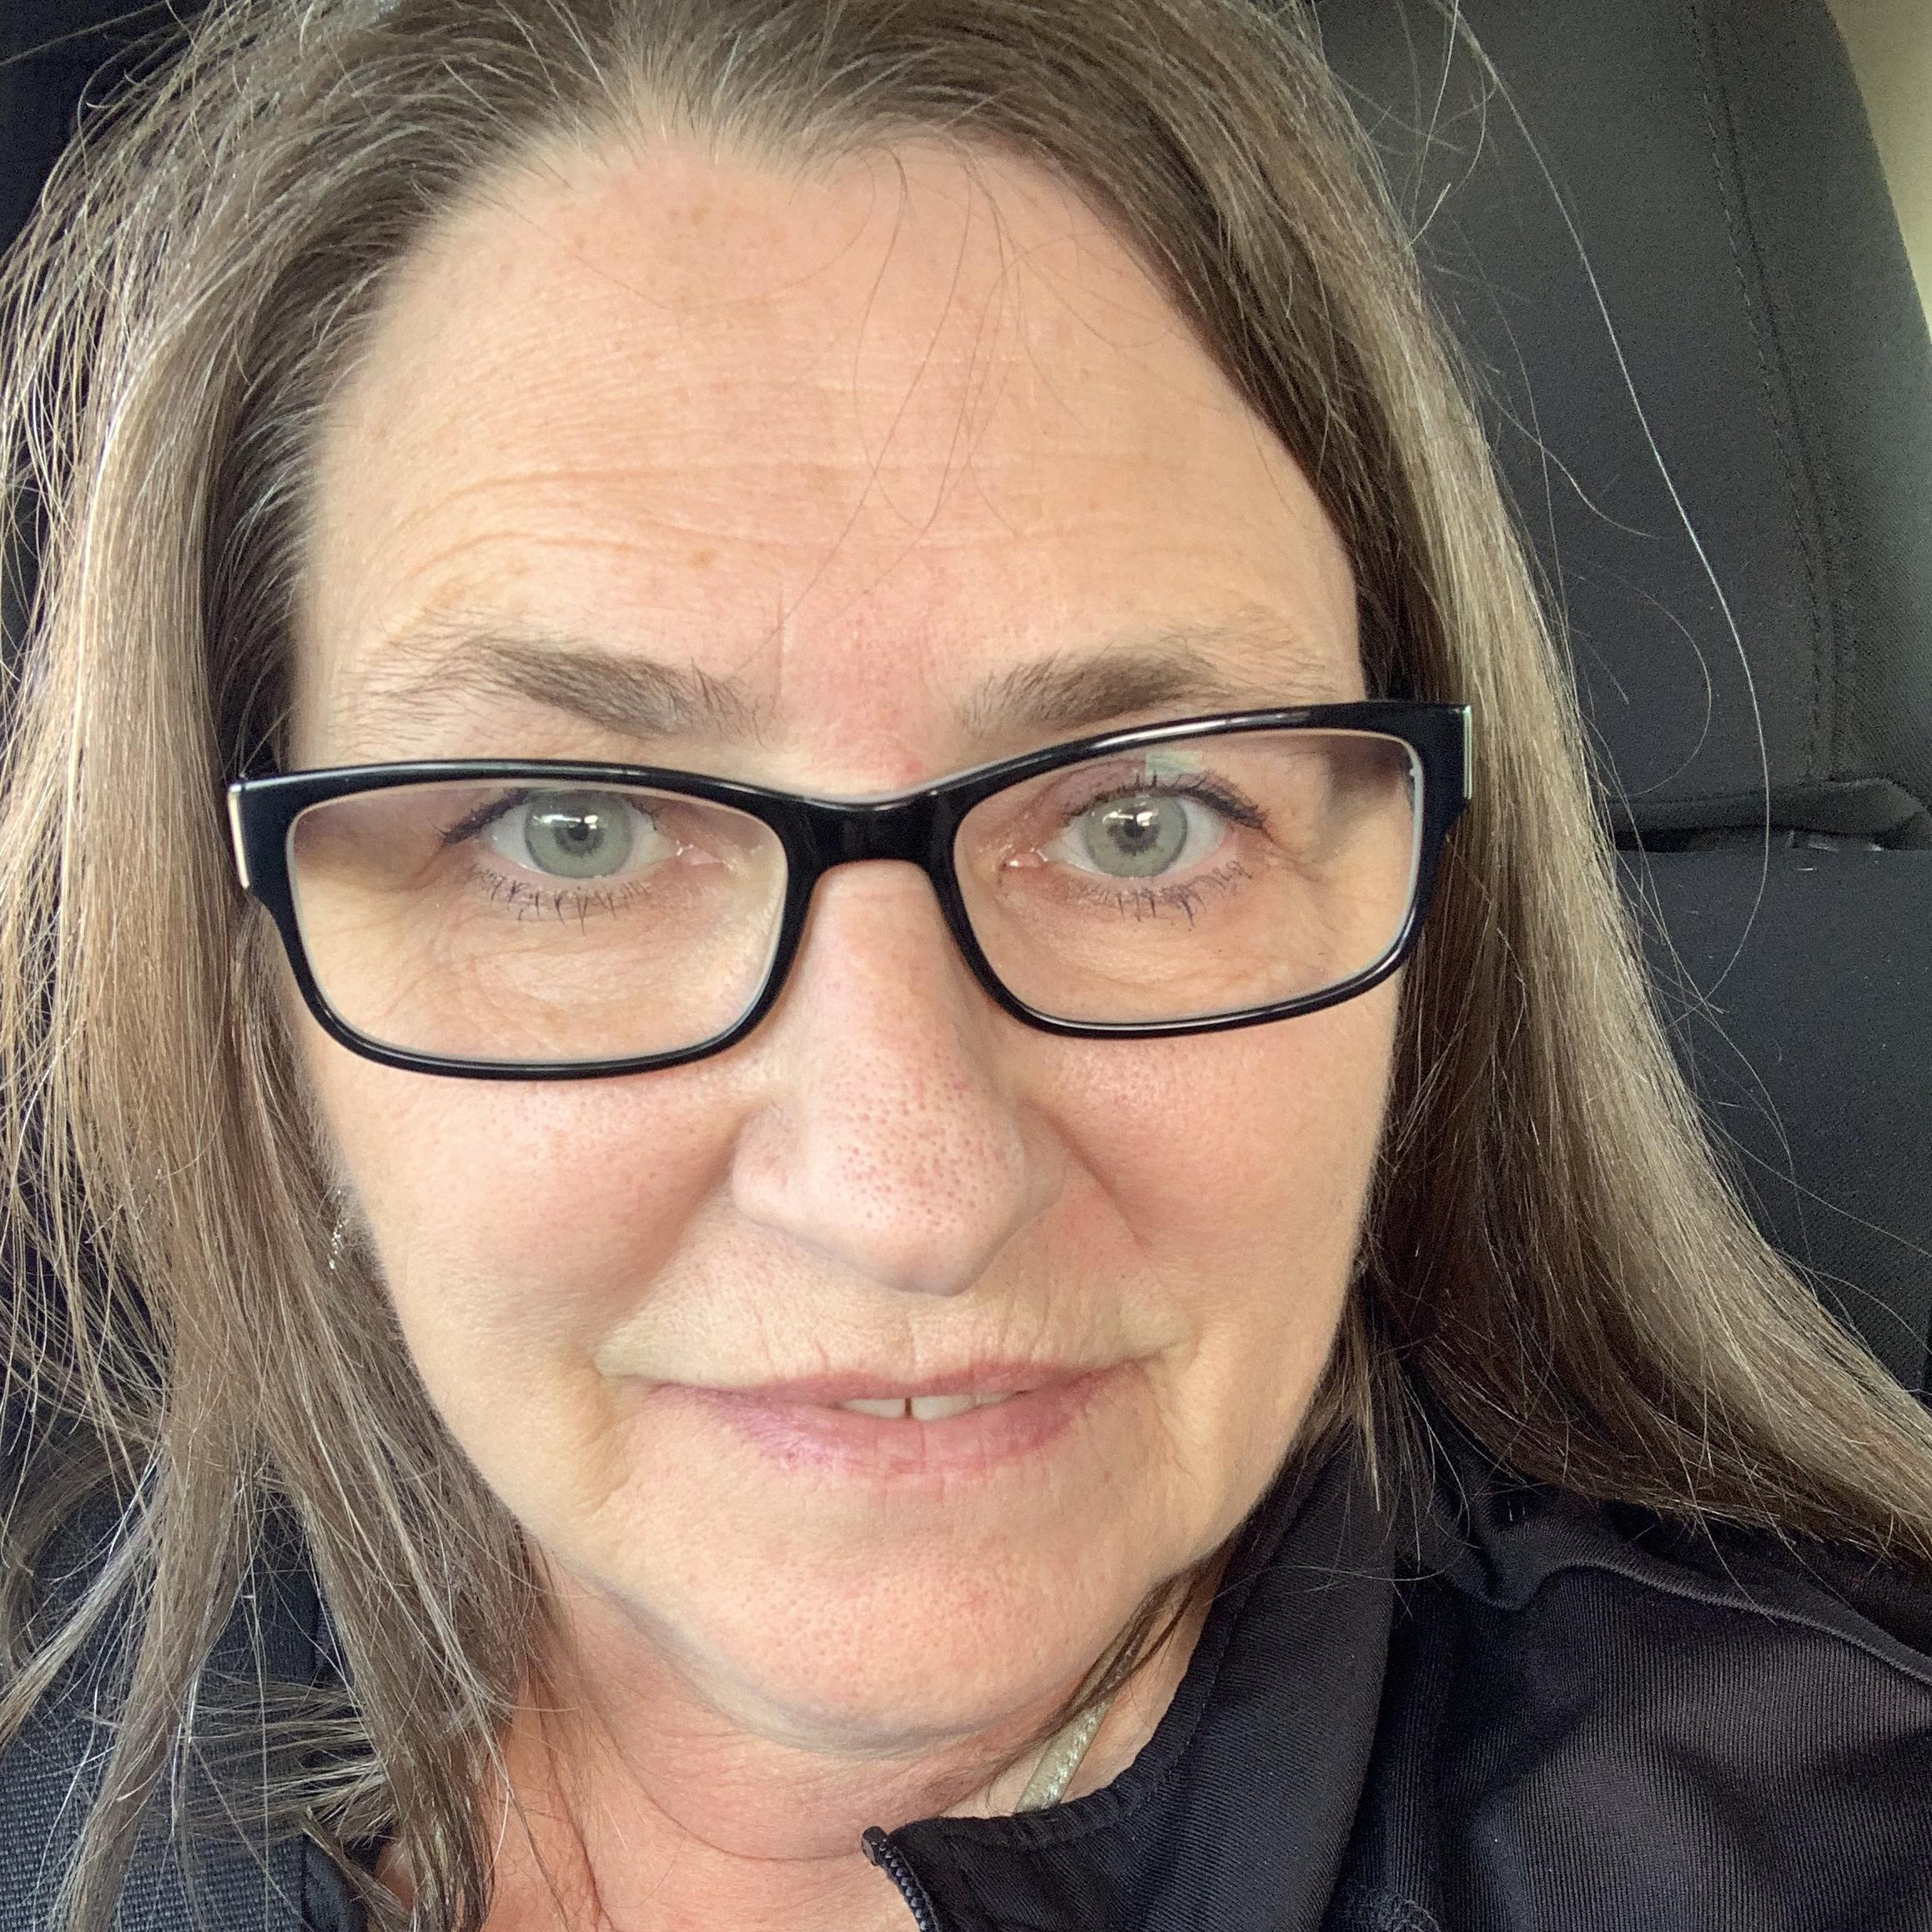 Charlotte Austin, Ed.S's Profile Photo